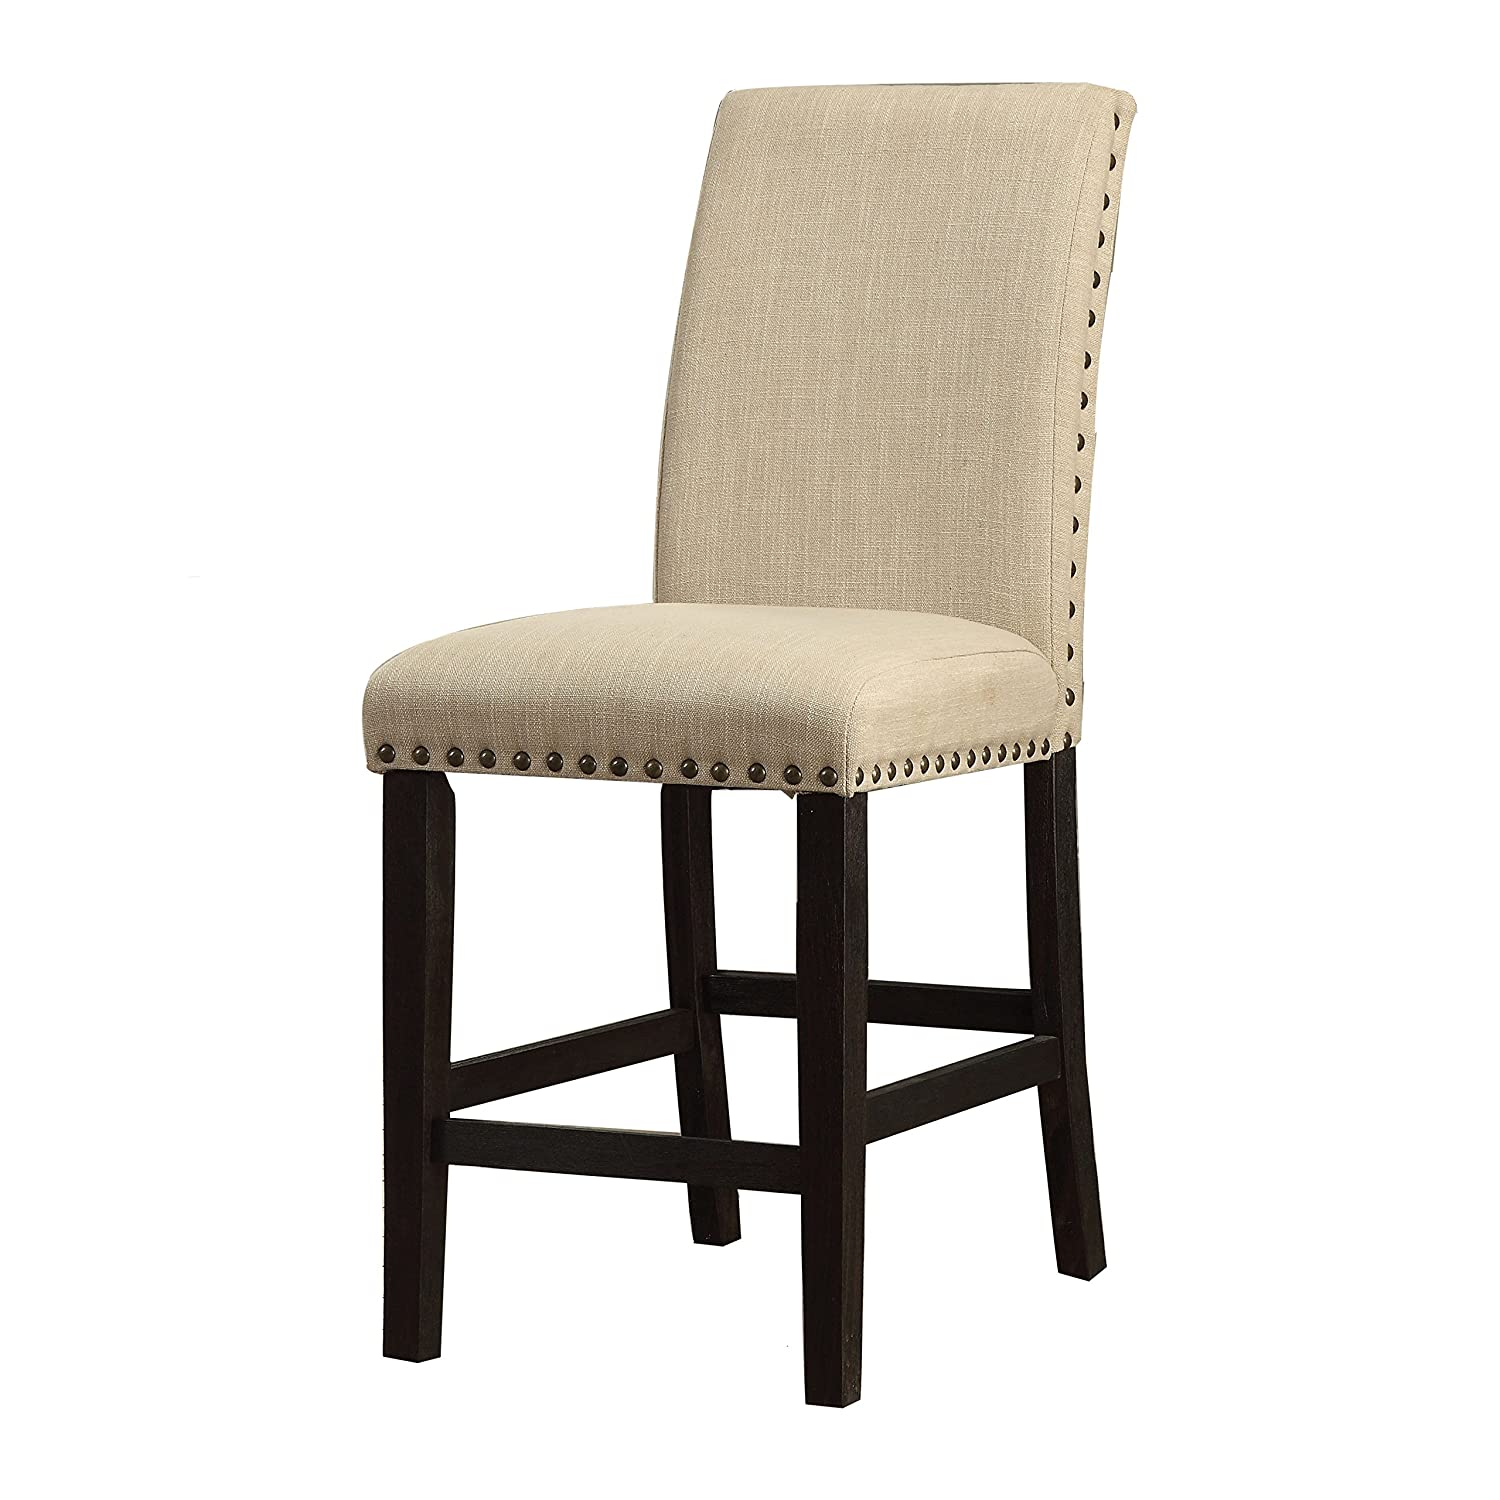 Amazon com homes inside out idf 3466pc black wren counter height chair set of 2 chairs